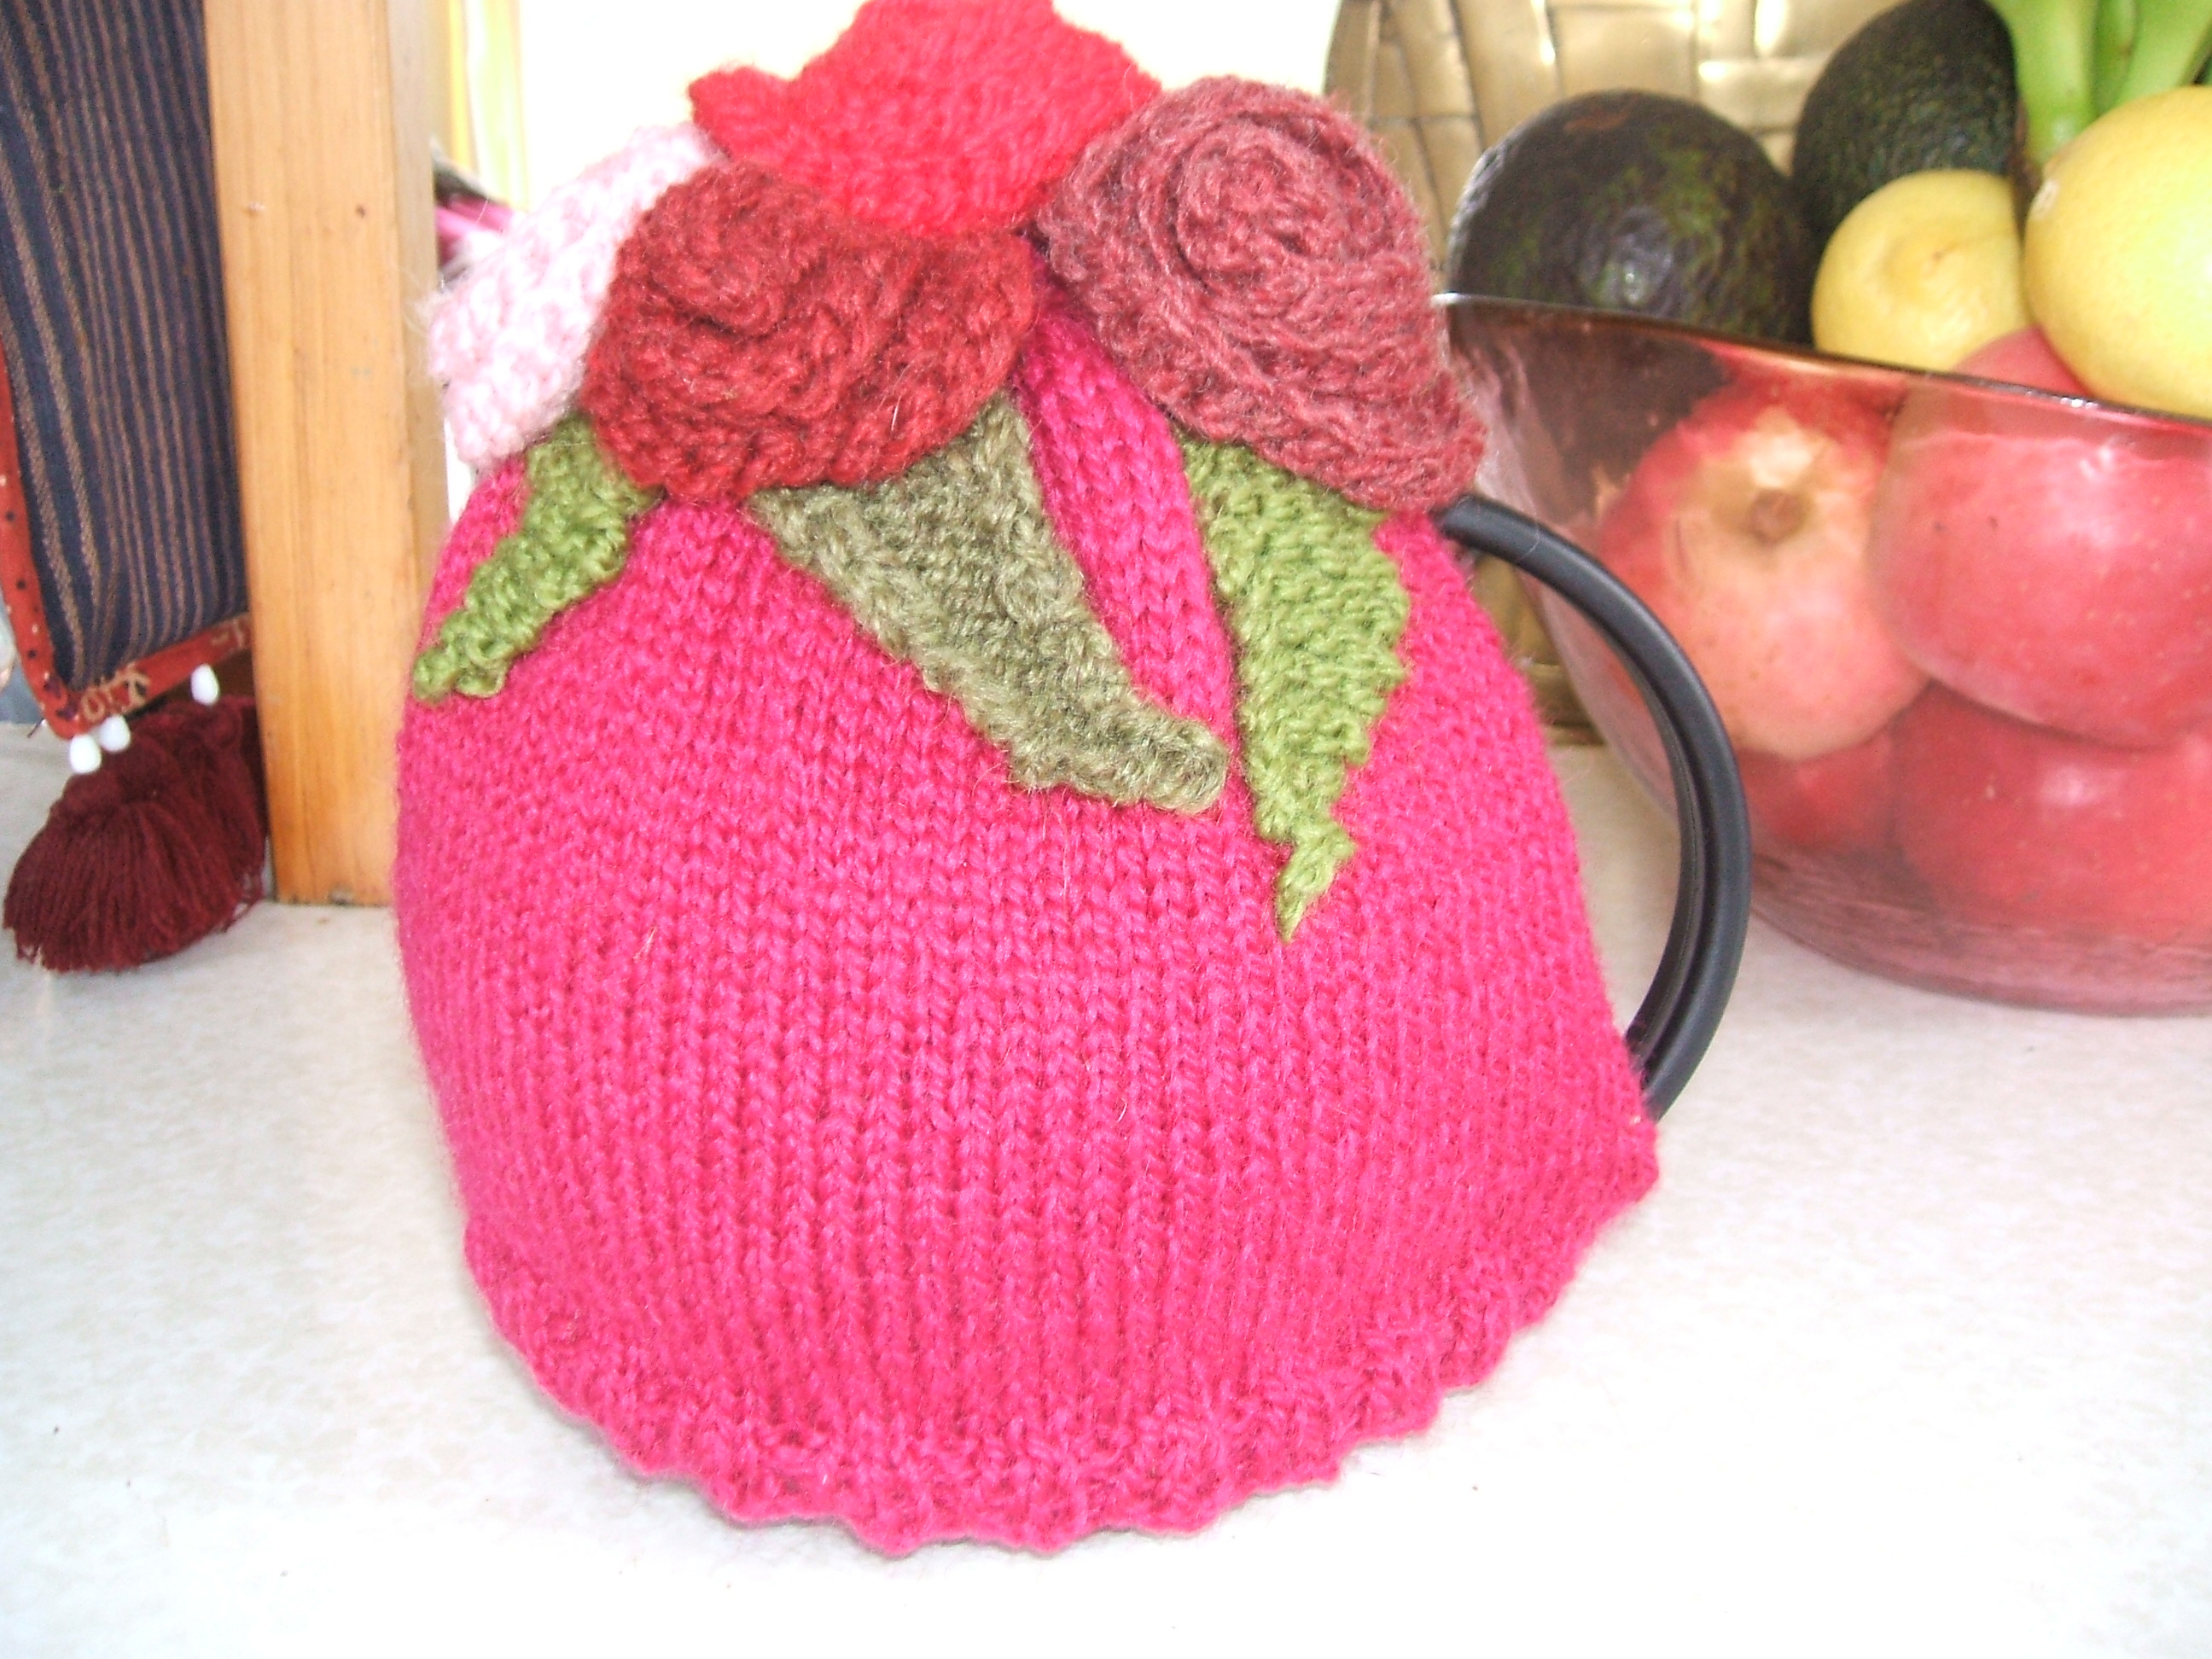 Knitted Tea Cosy Pattern Easy Crochet Tea Cosy Patterns Patterns Gallery